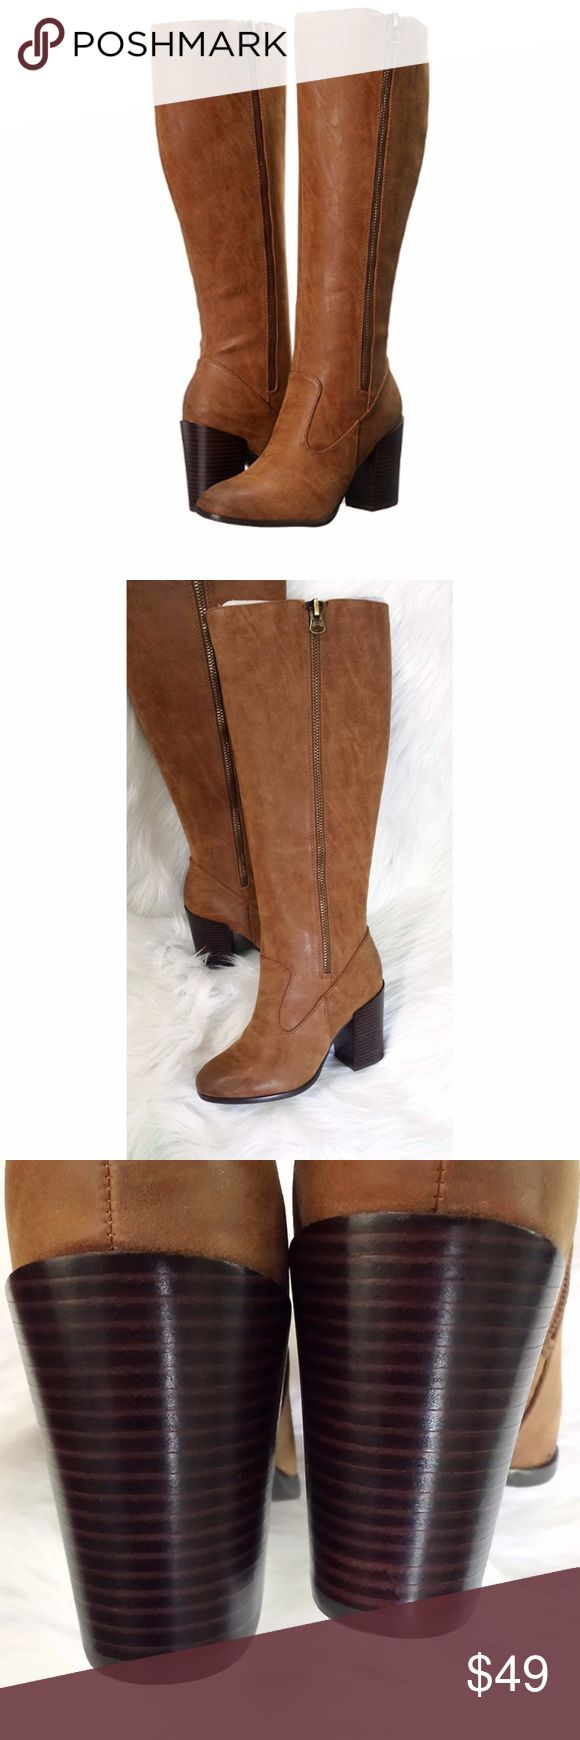 Tan Knee High Boots Tan knee high heeled boots with a burnished look.  Sturdy and doesn't get really slouchy/crumpled like other tall boots or riding boots. Only tried on.    Approximate measurements:  Circumference: 15 1⁄2 in Shaft: 19 in Platform Height: 1⁄4 in Sbicca Shoes Heeled Boots